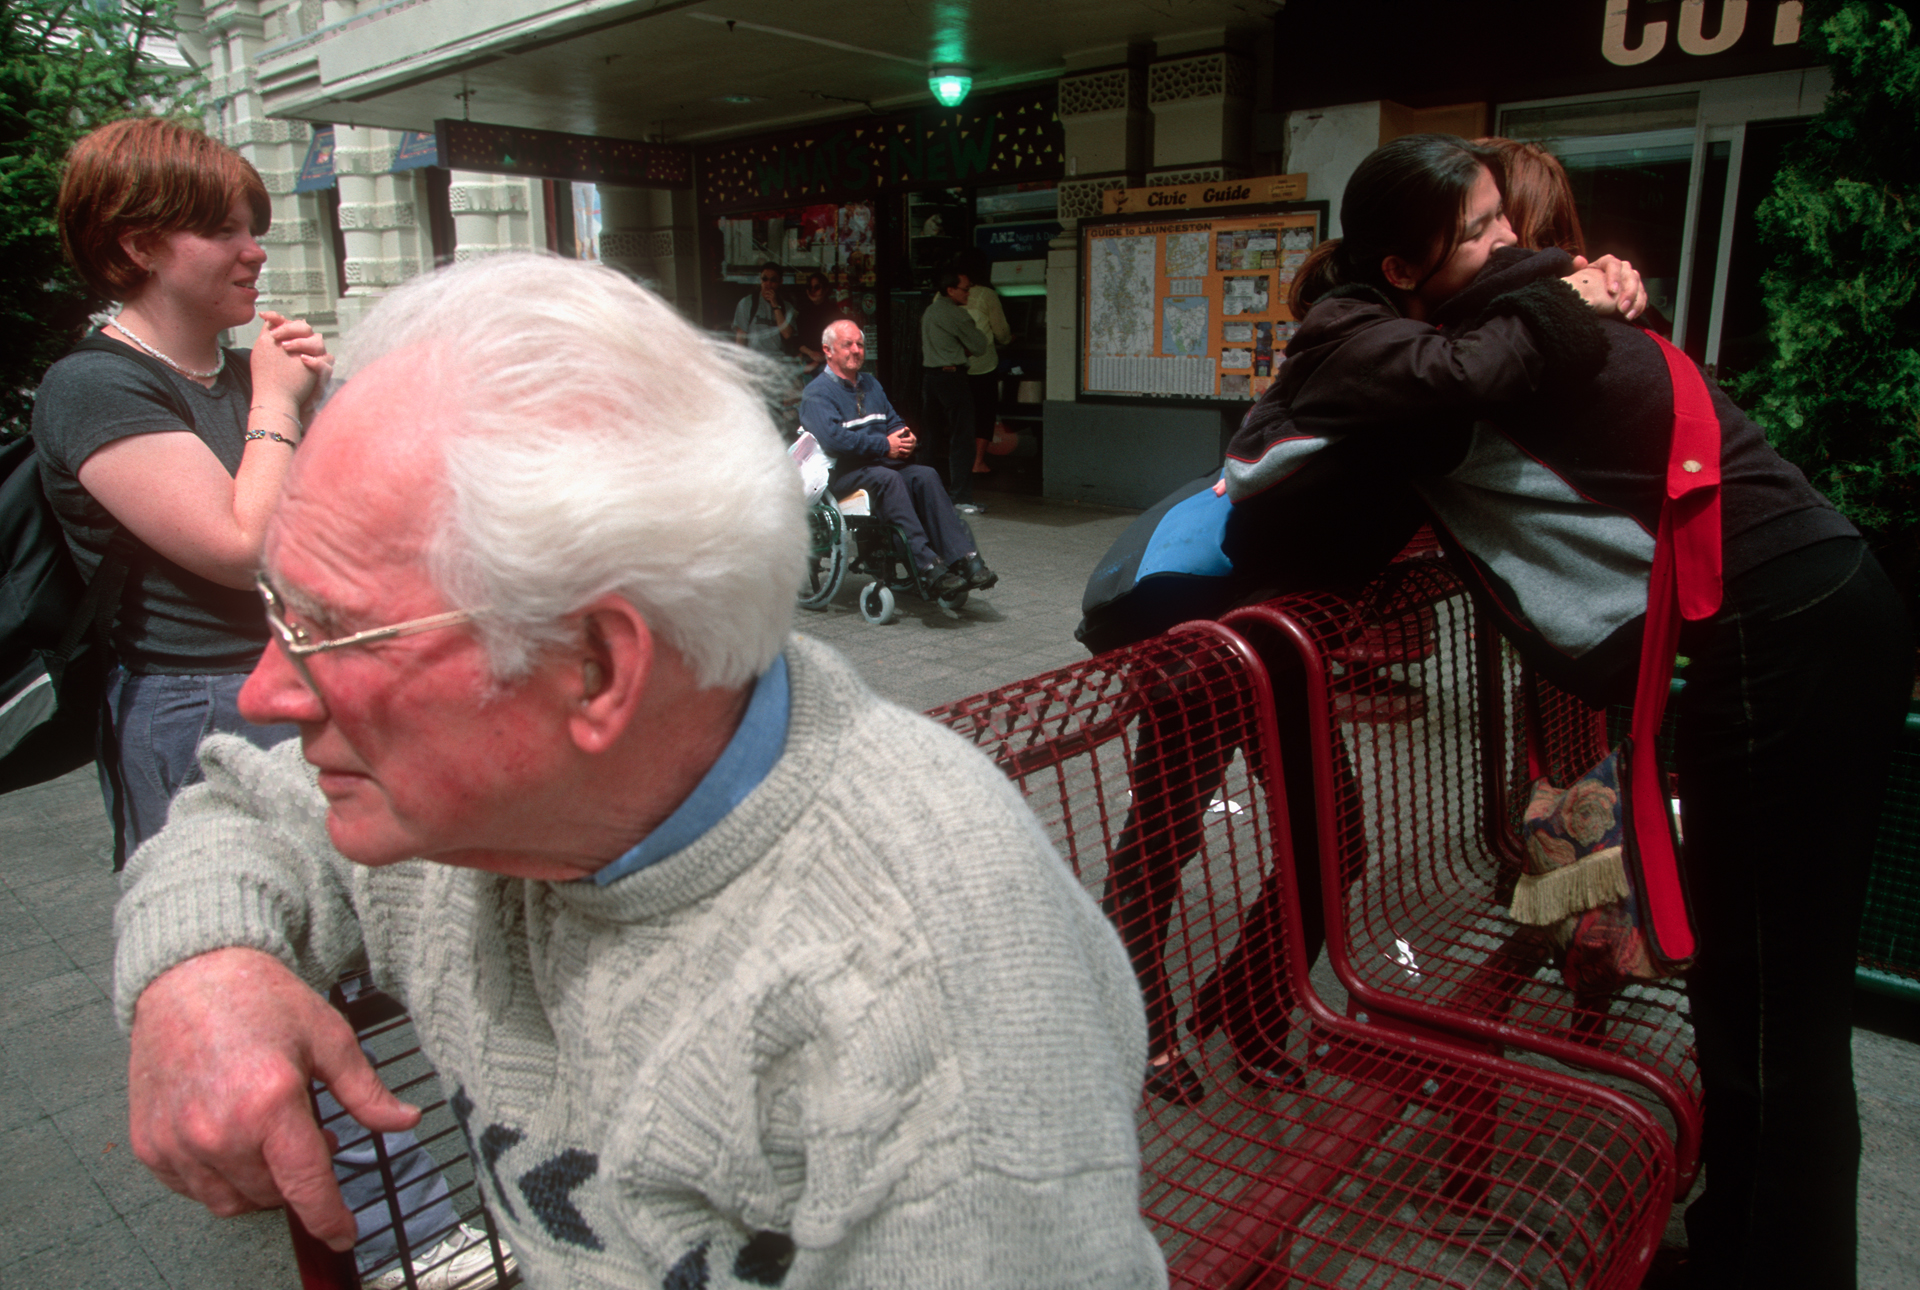 Youngsters and elderly alike hang out in the mall in Launceston, Tasmania's second-oldest city.  Launceston